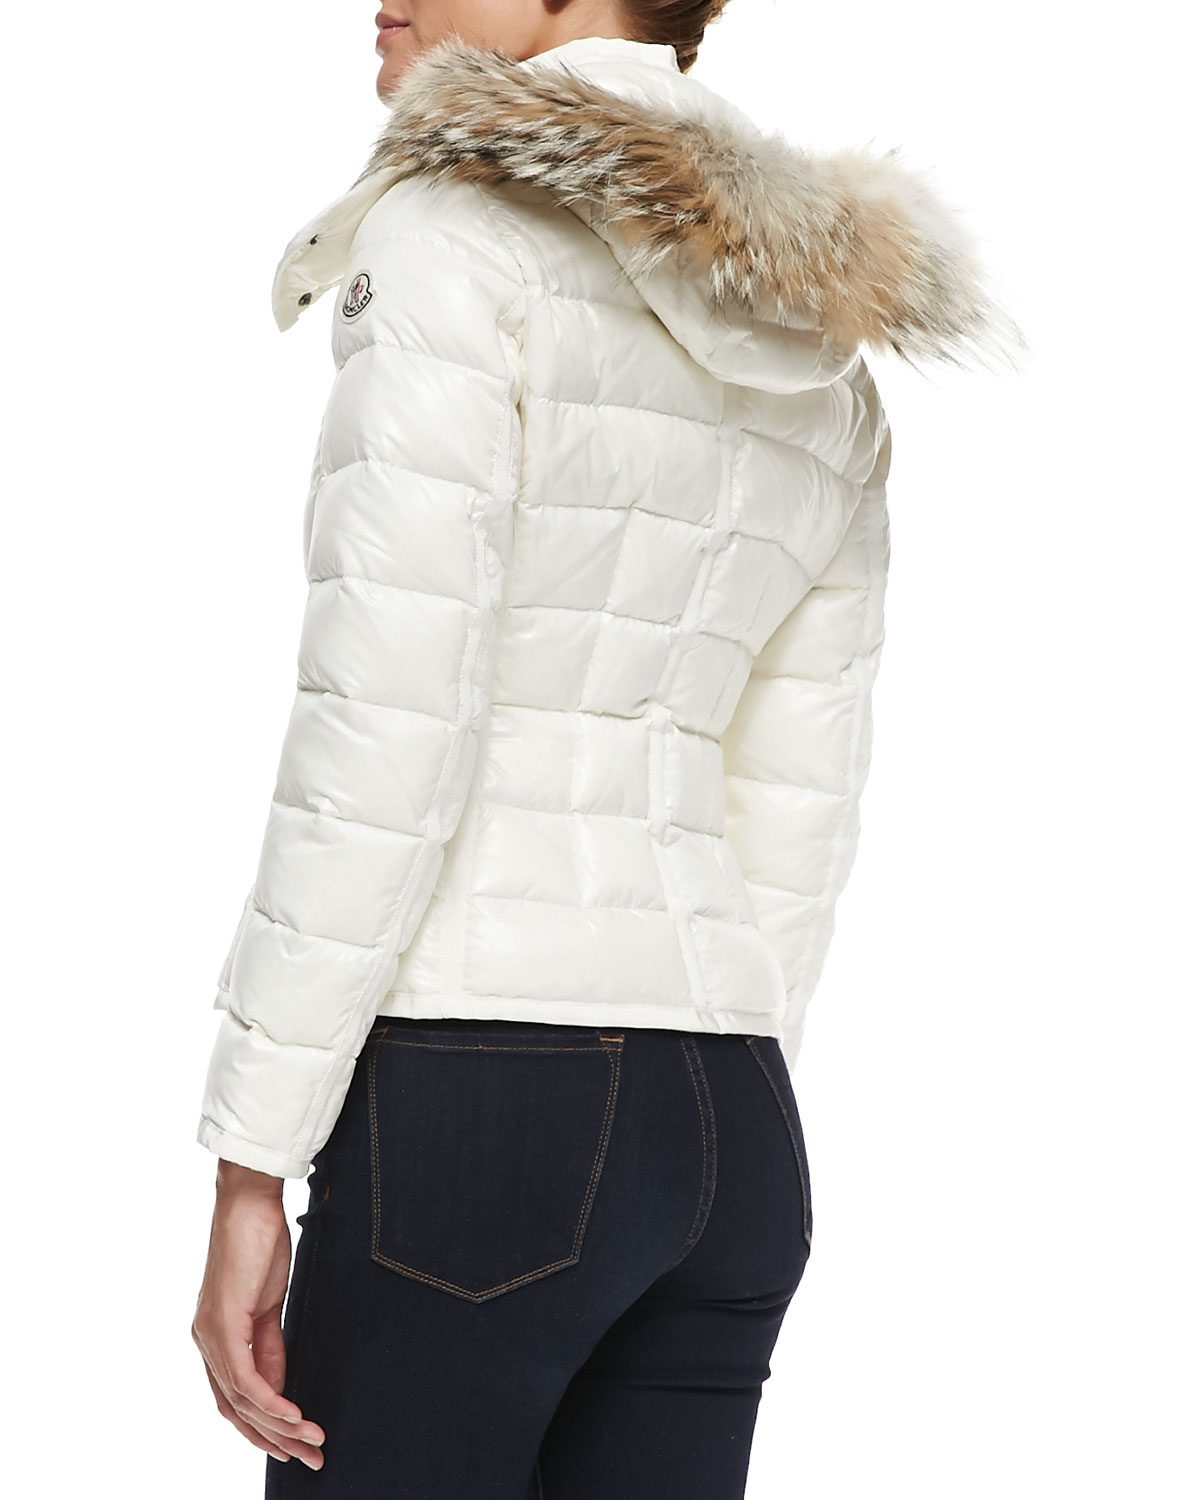 Lyst - Moncler Puffer Jacket With Fur-Trim Hood In White-4248